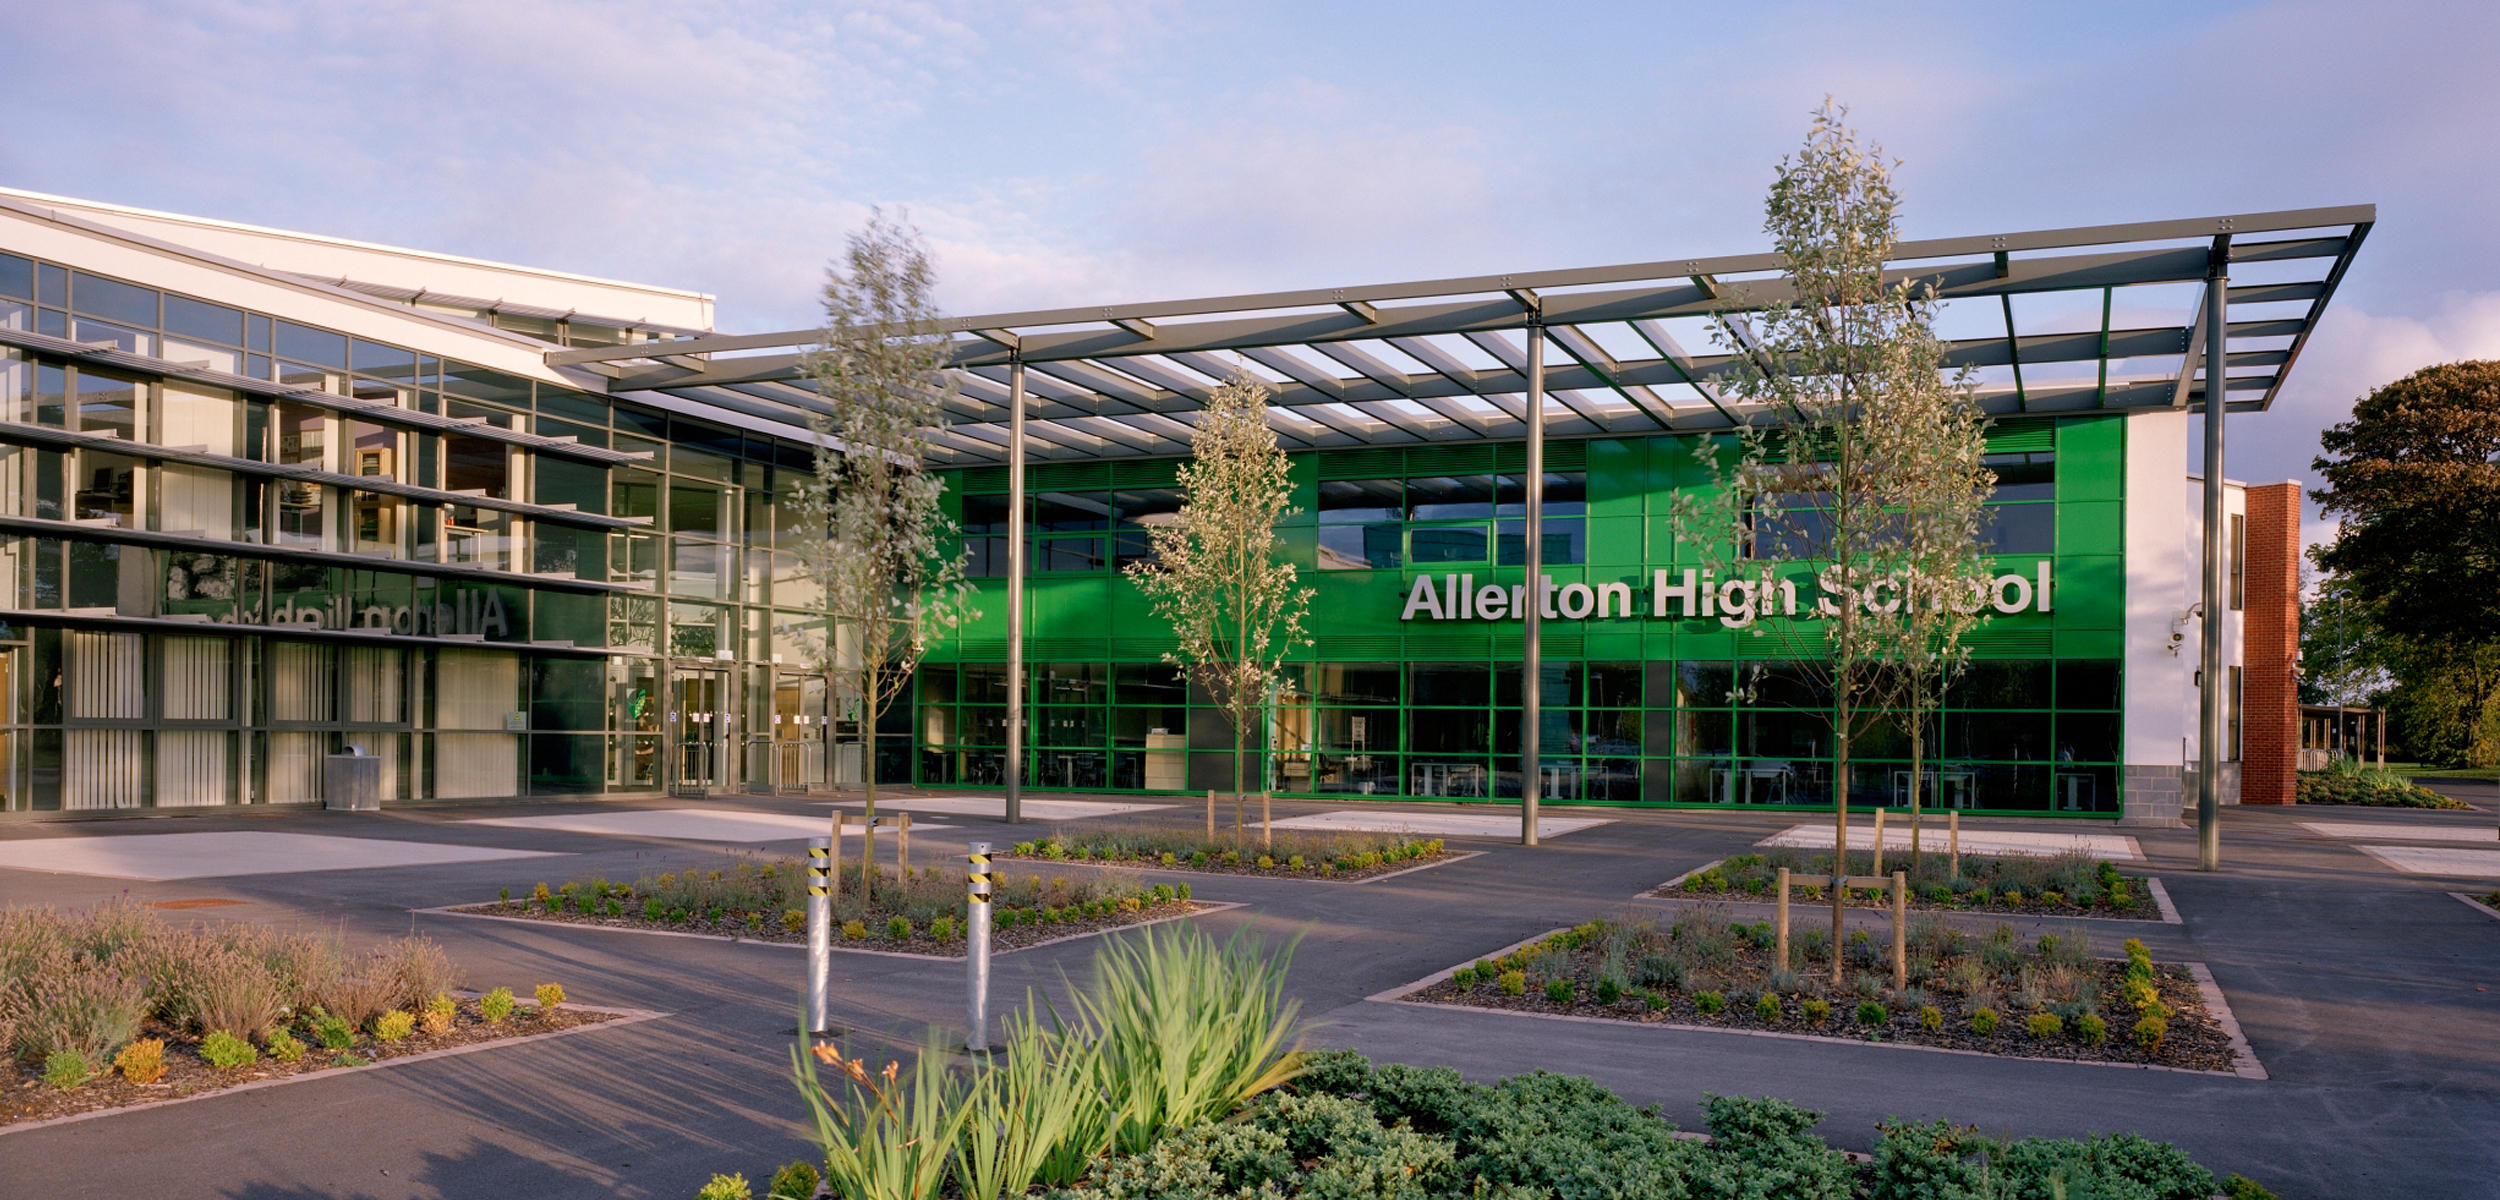 Allerton High school exterior_2.jpg